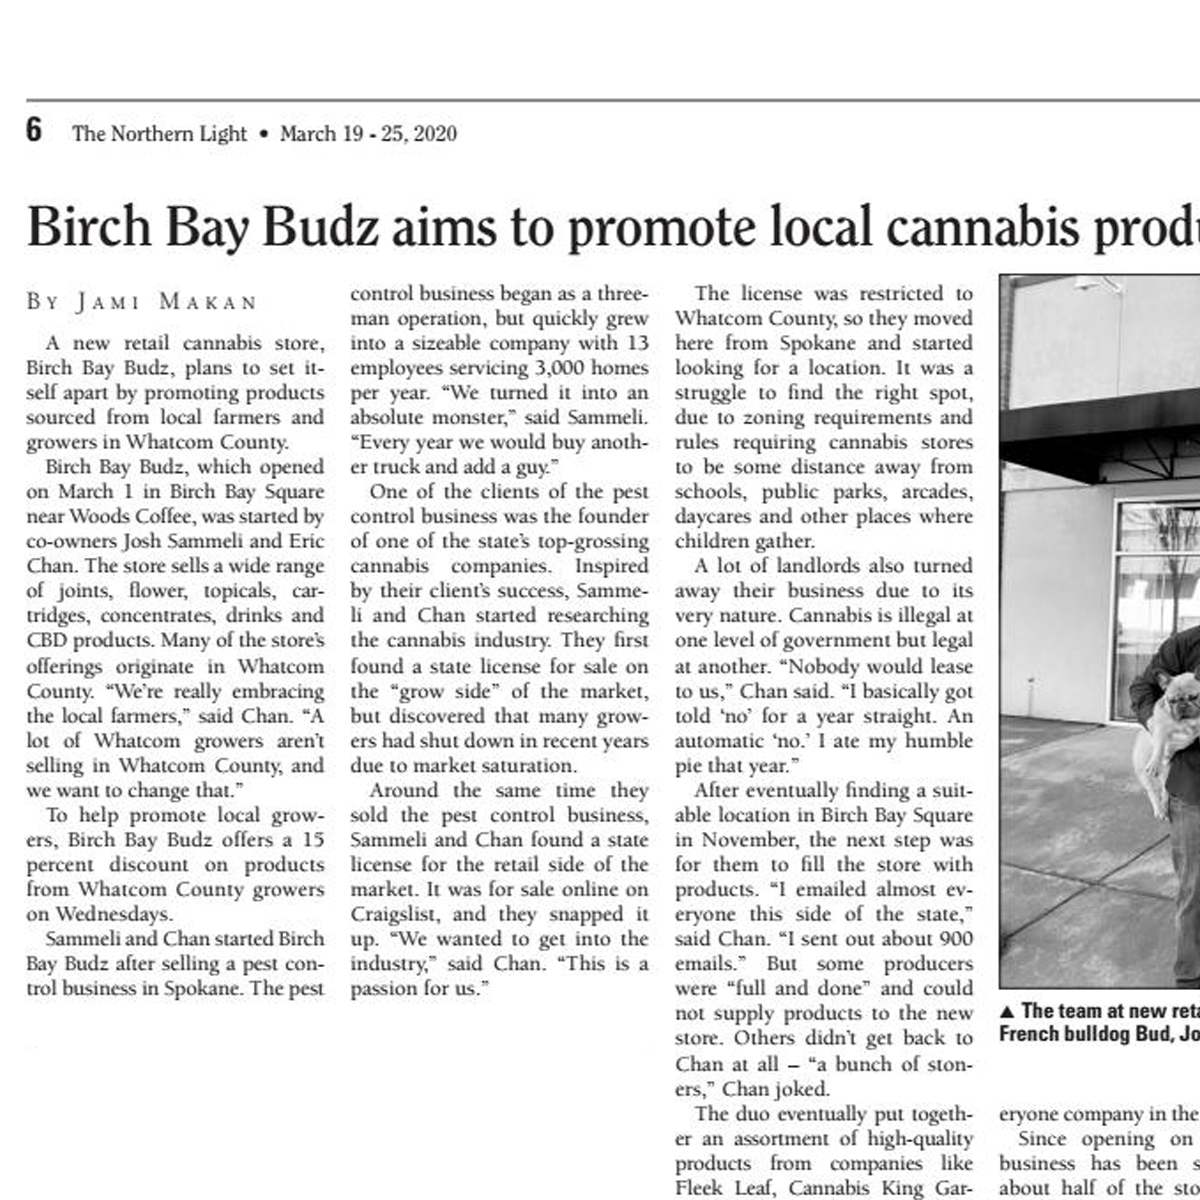 Birch Bay Budz aims to promote local cannabis producers - Northern Light Article